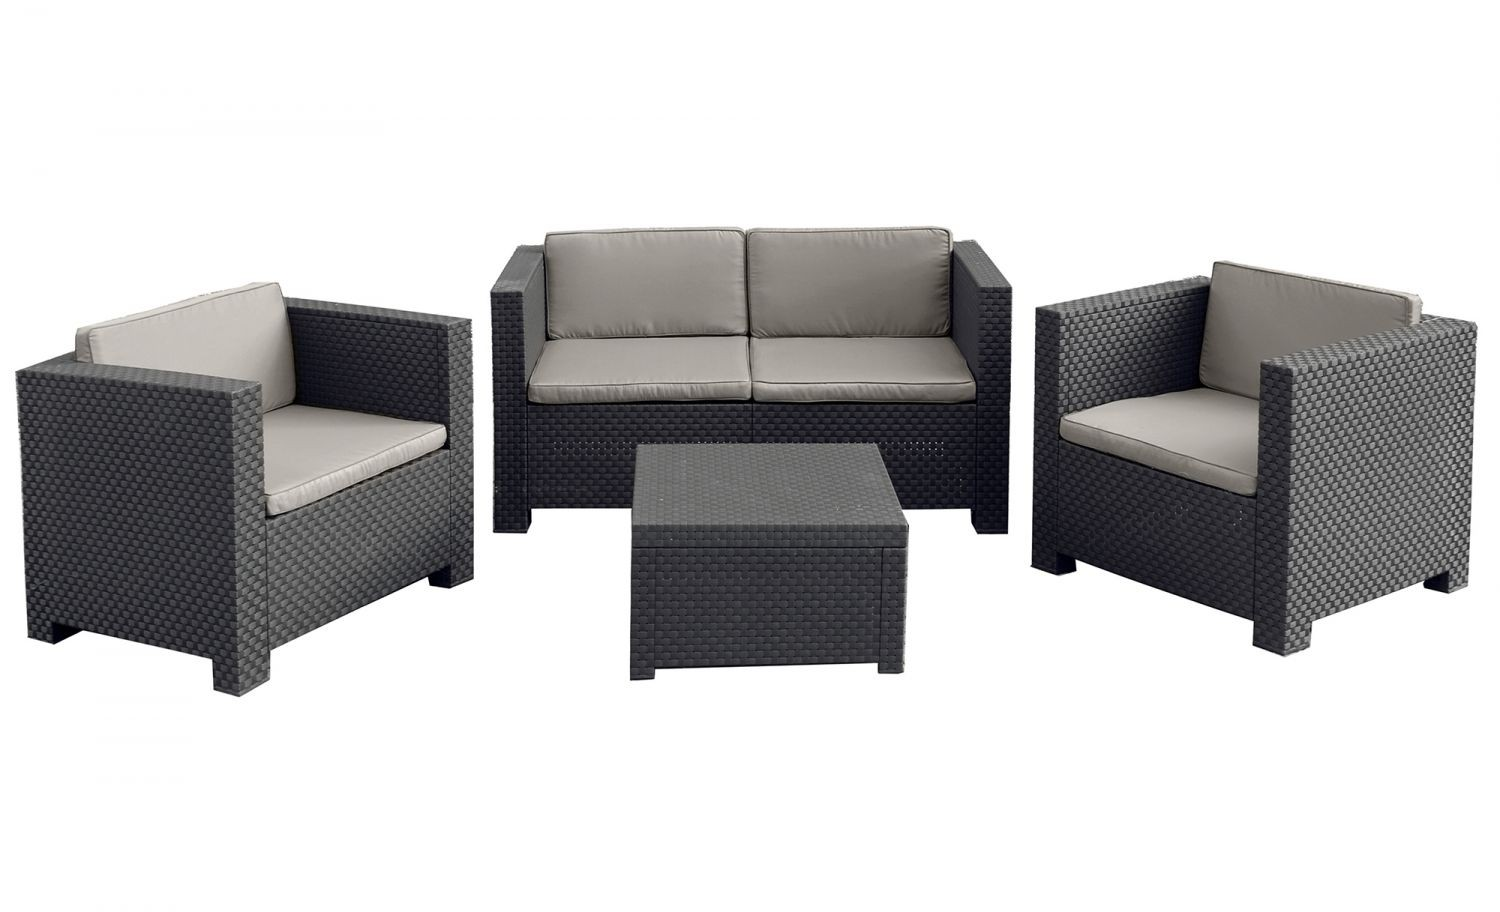 ubud 4 salon de jardin 4 places effet r sine tress e antracite. Black Bedroom Furniture Sets. Home Design Ideas